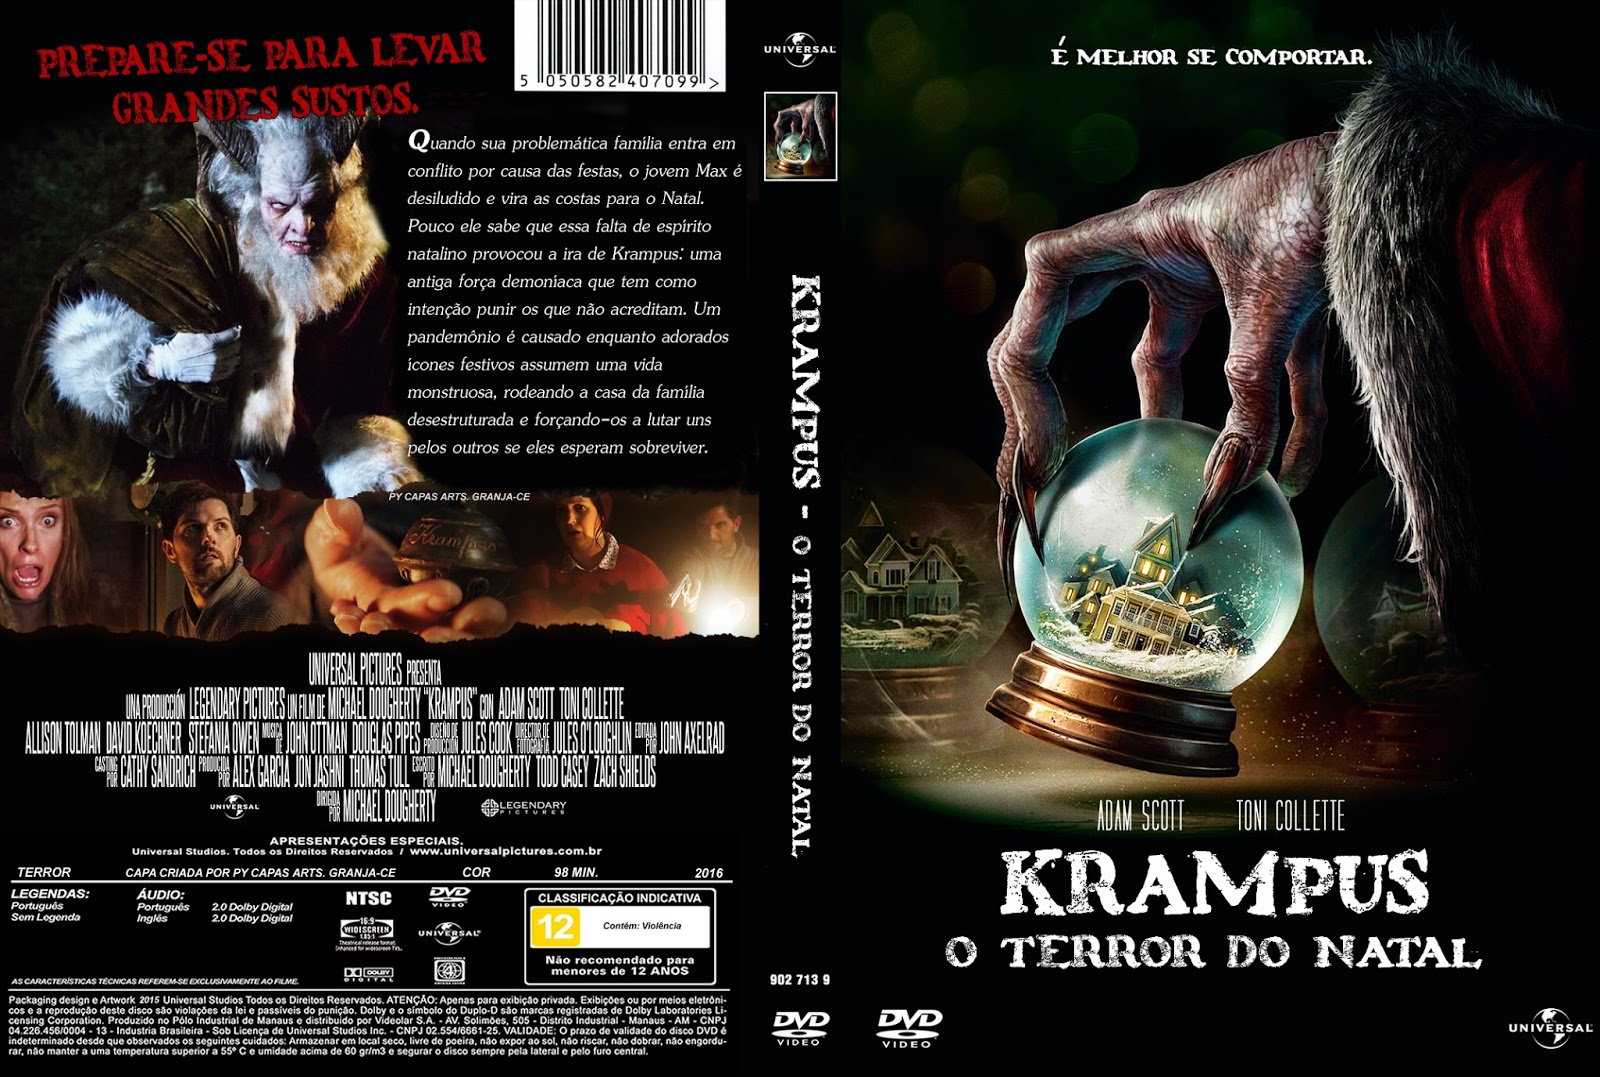 Krampus O Terror do Natal BDRip XviD Dual Áudio Krampus 2BO 2BTerror 2Bdo 2BNatal 2B  2BXANDAODOWNLOAD